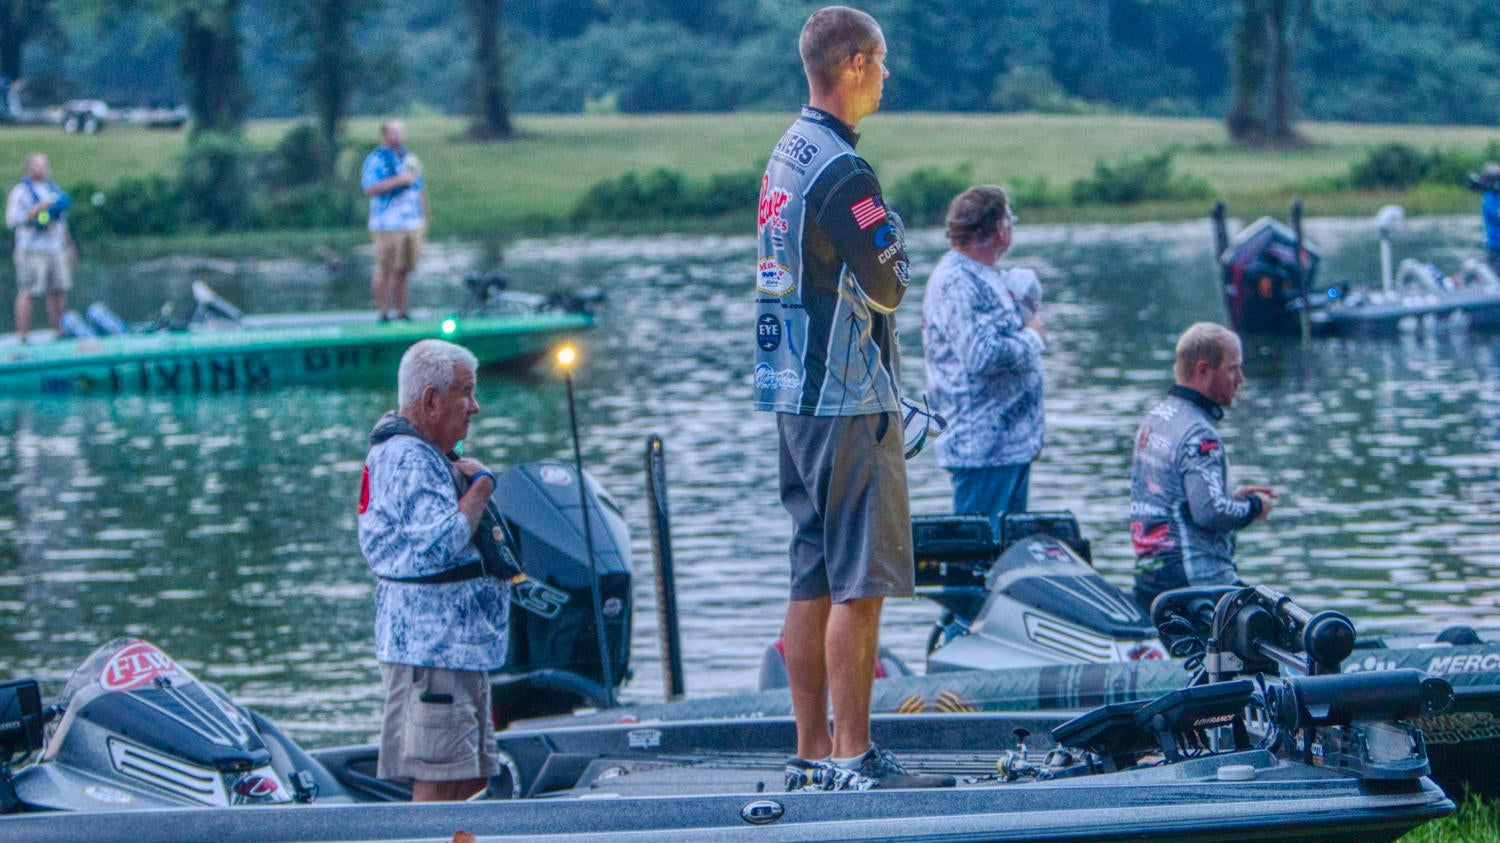 flw-cup-day2-8.jpg